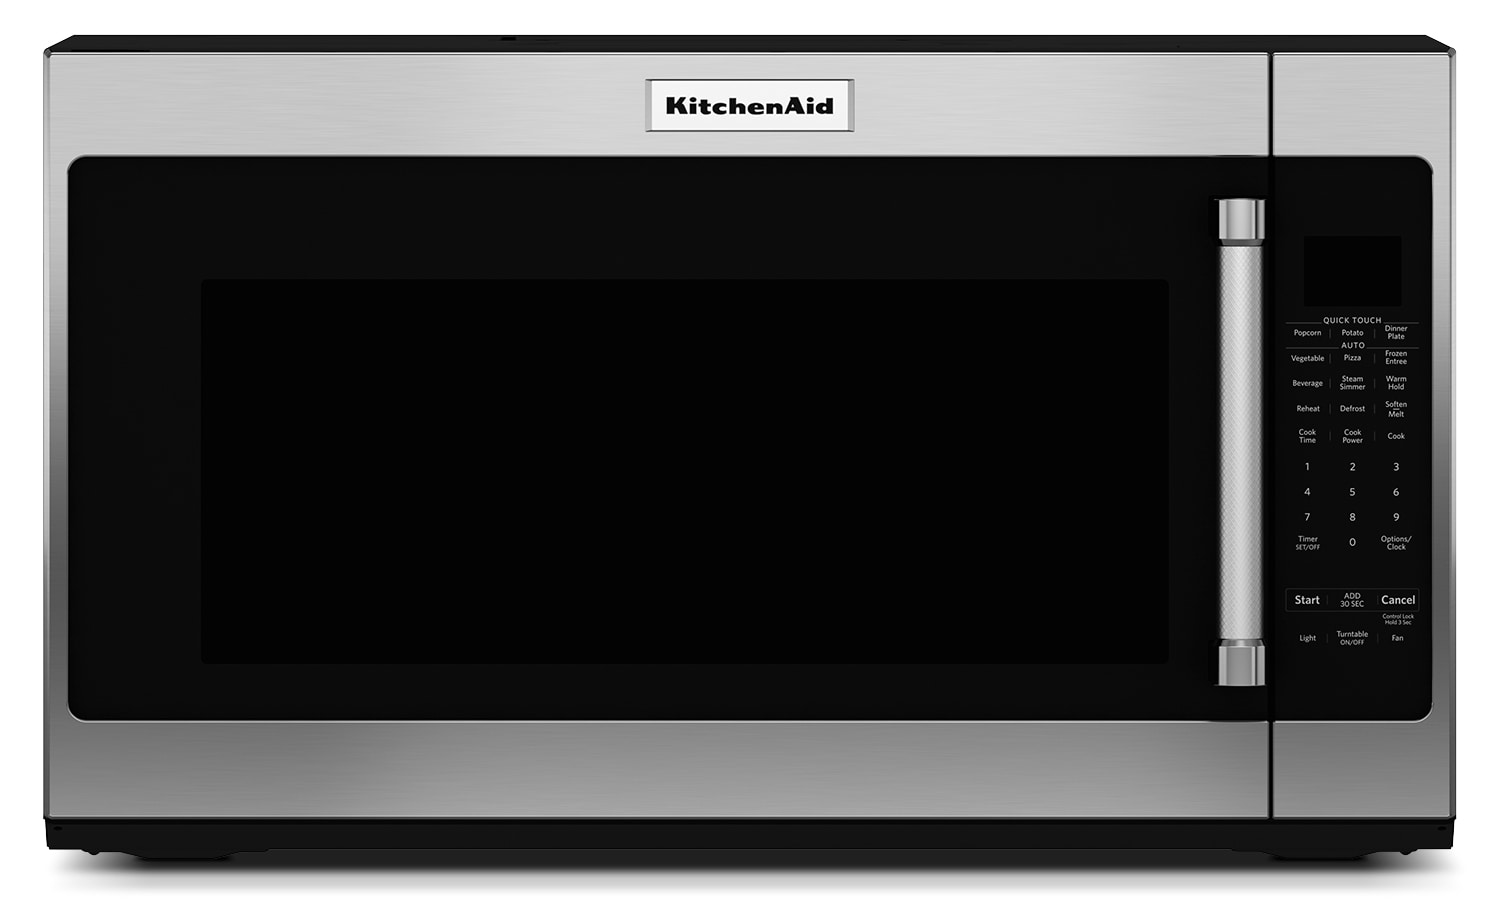 KitchenAid Stainless Steel Over-the-Range Microwave (2 Cu. Ft.) - YKMHS120ES